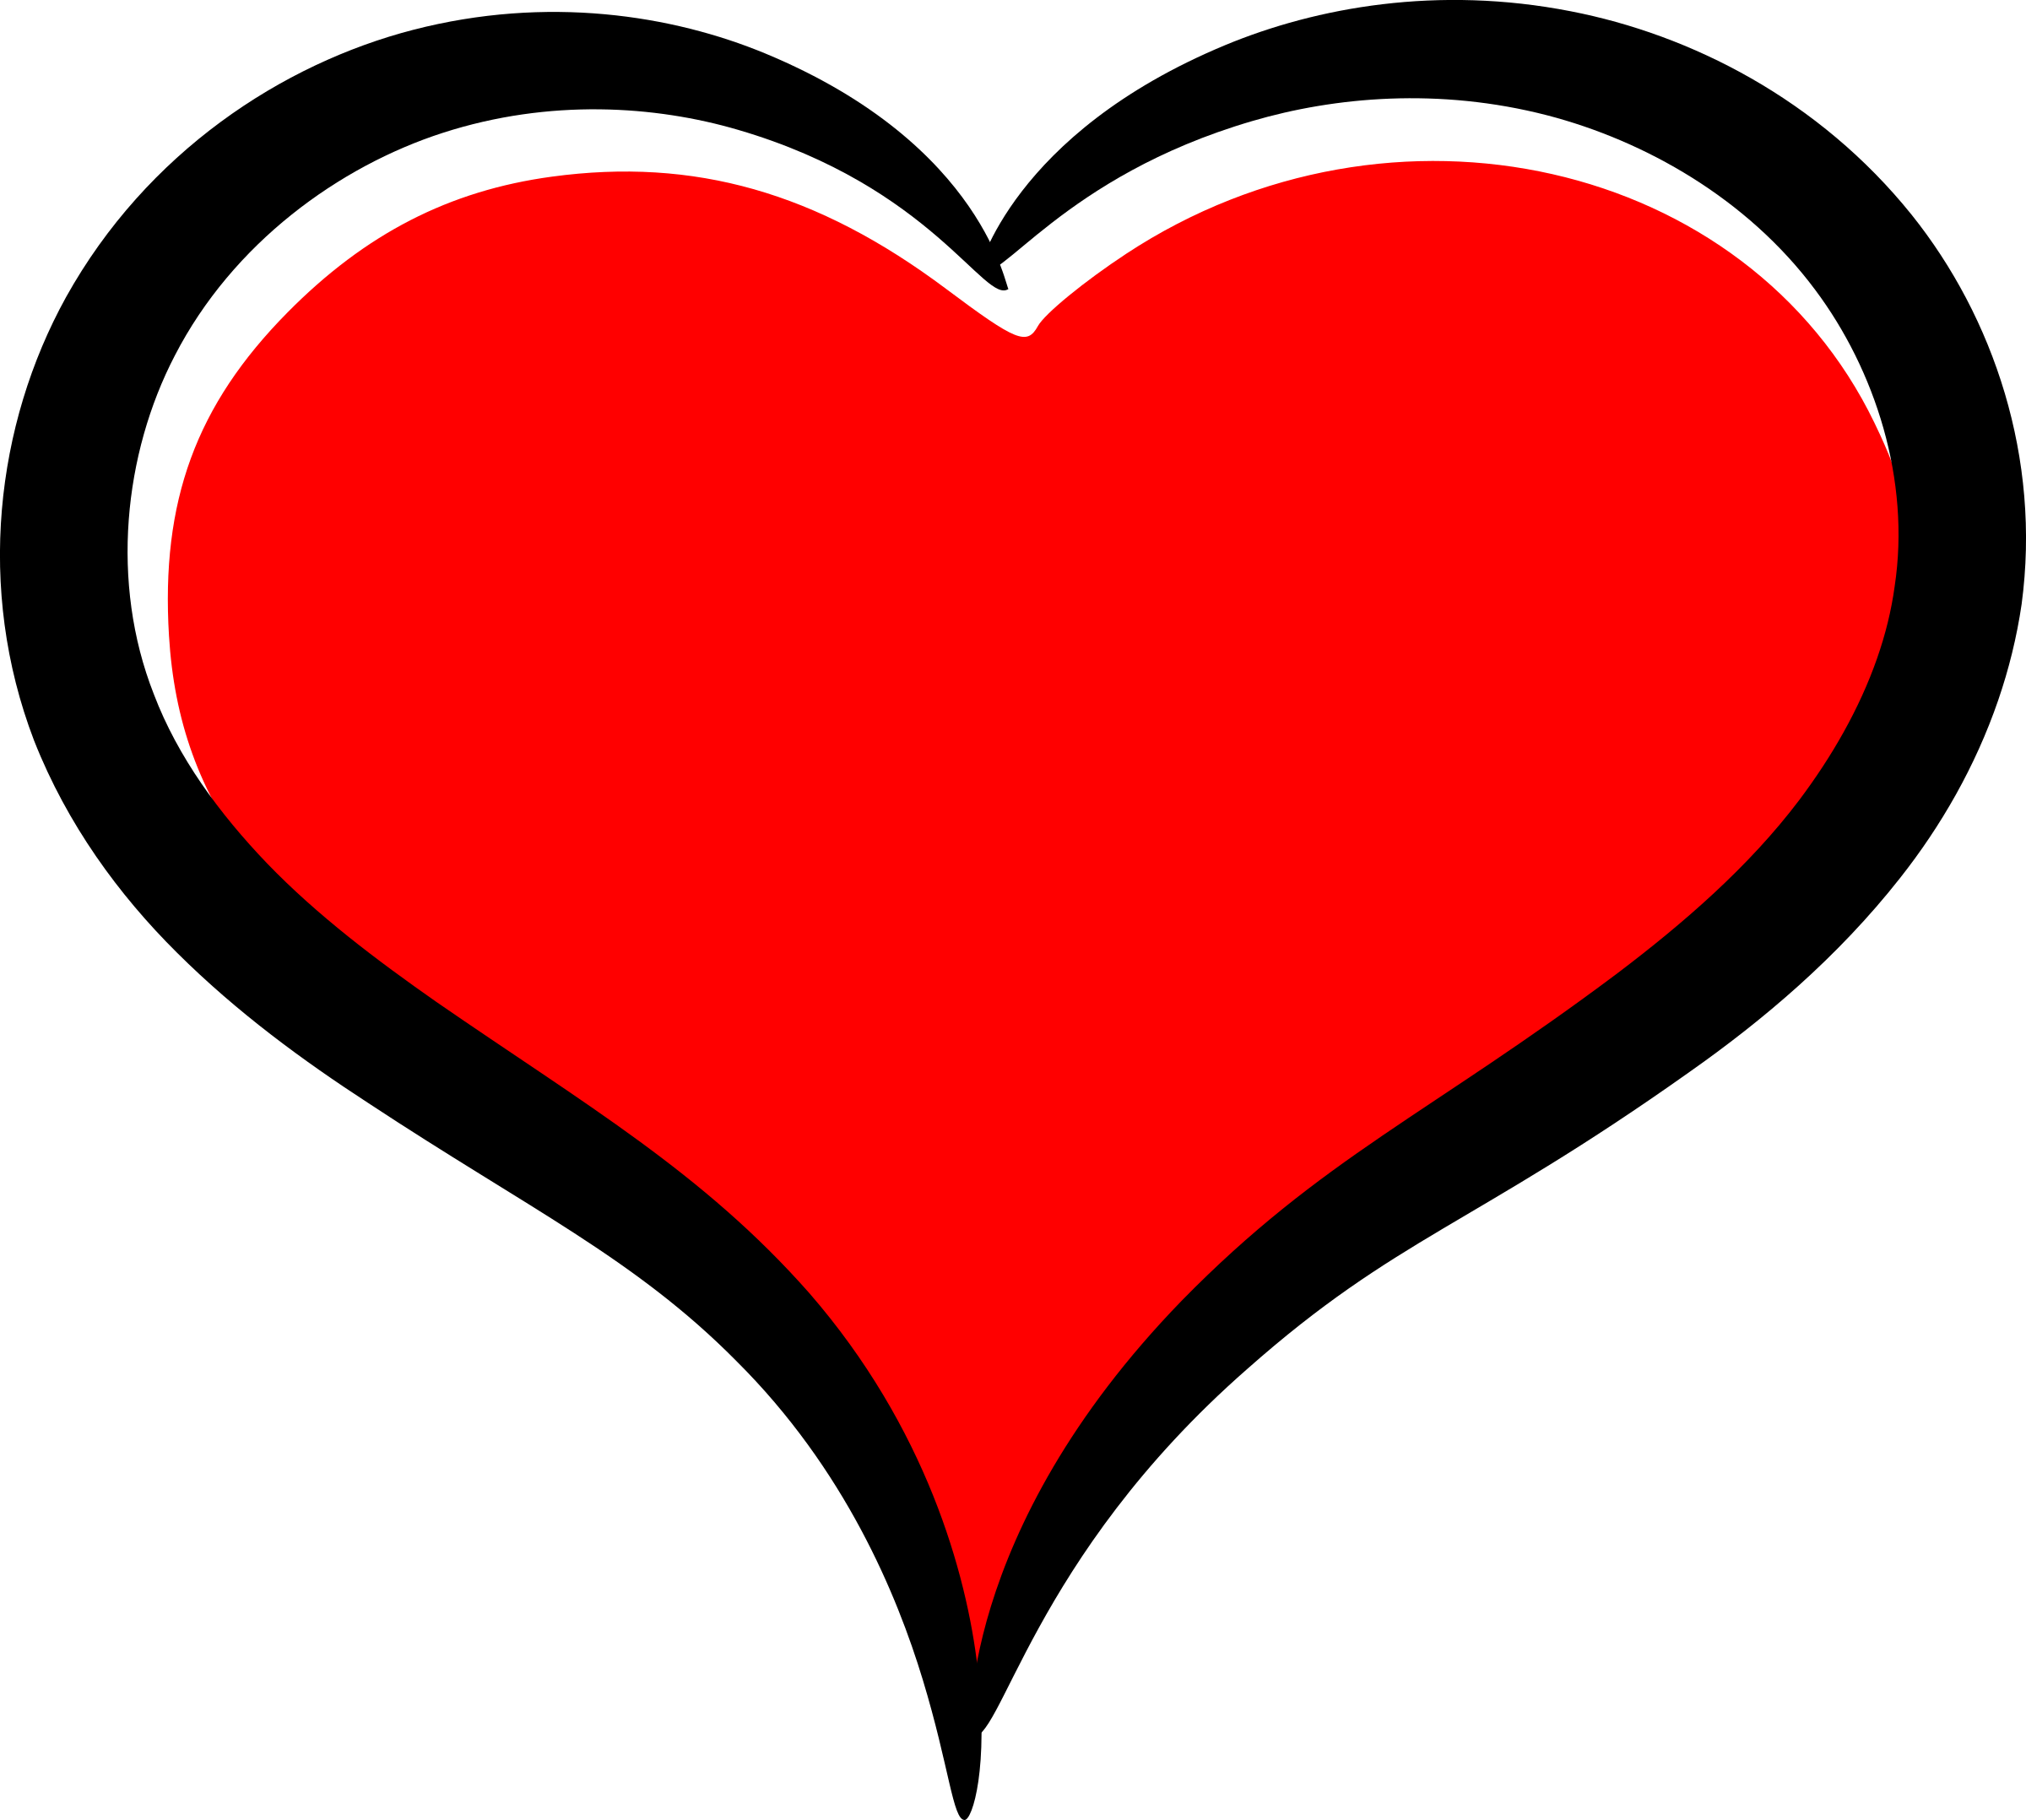 Big image png. Clipart heart red